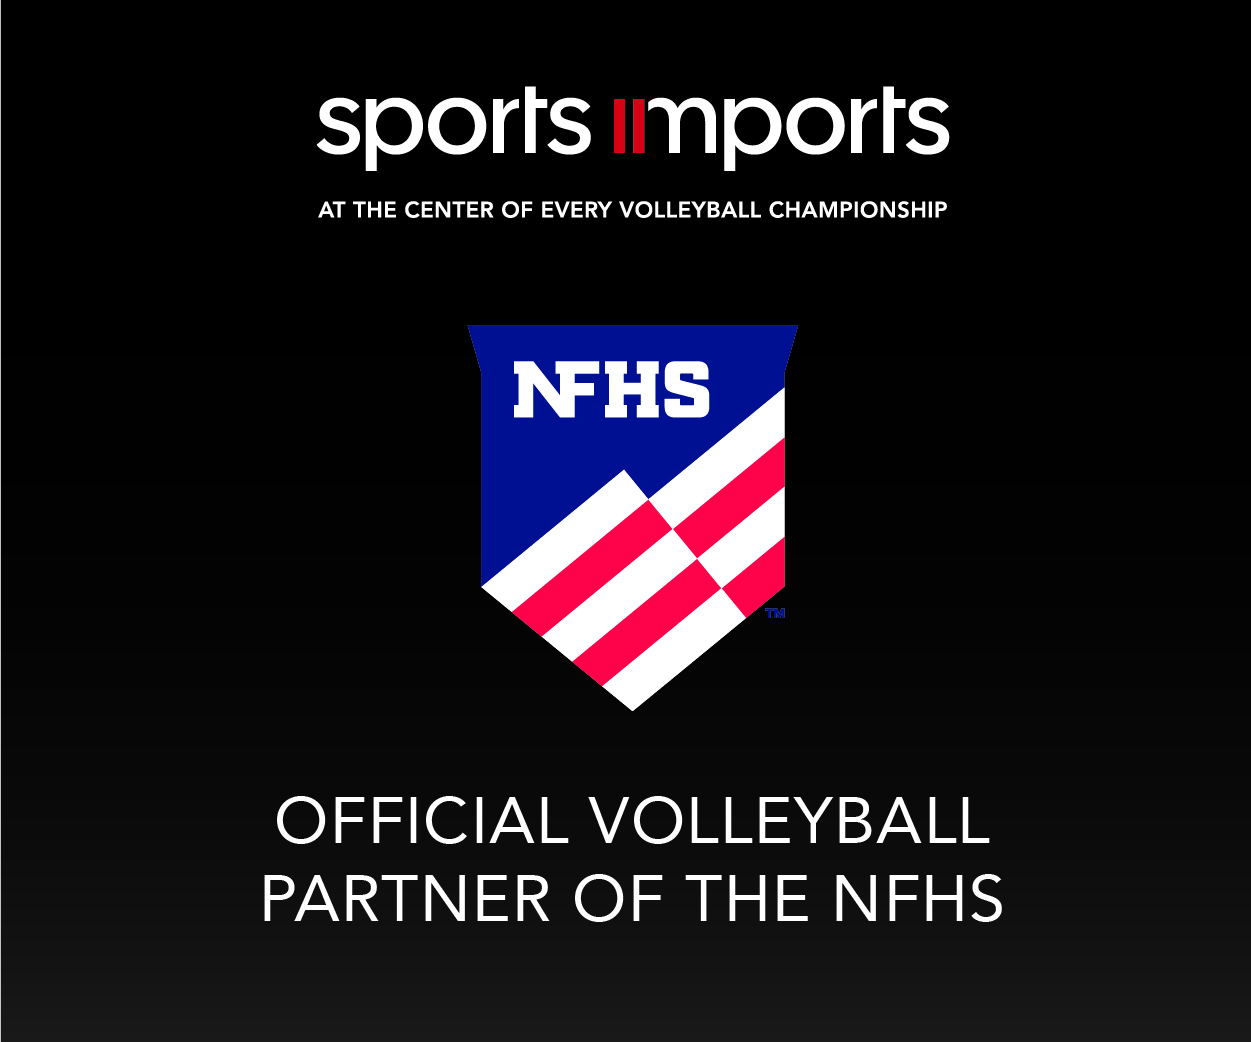 Nfhs learn online partner ad 01